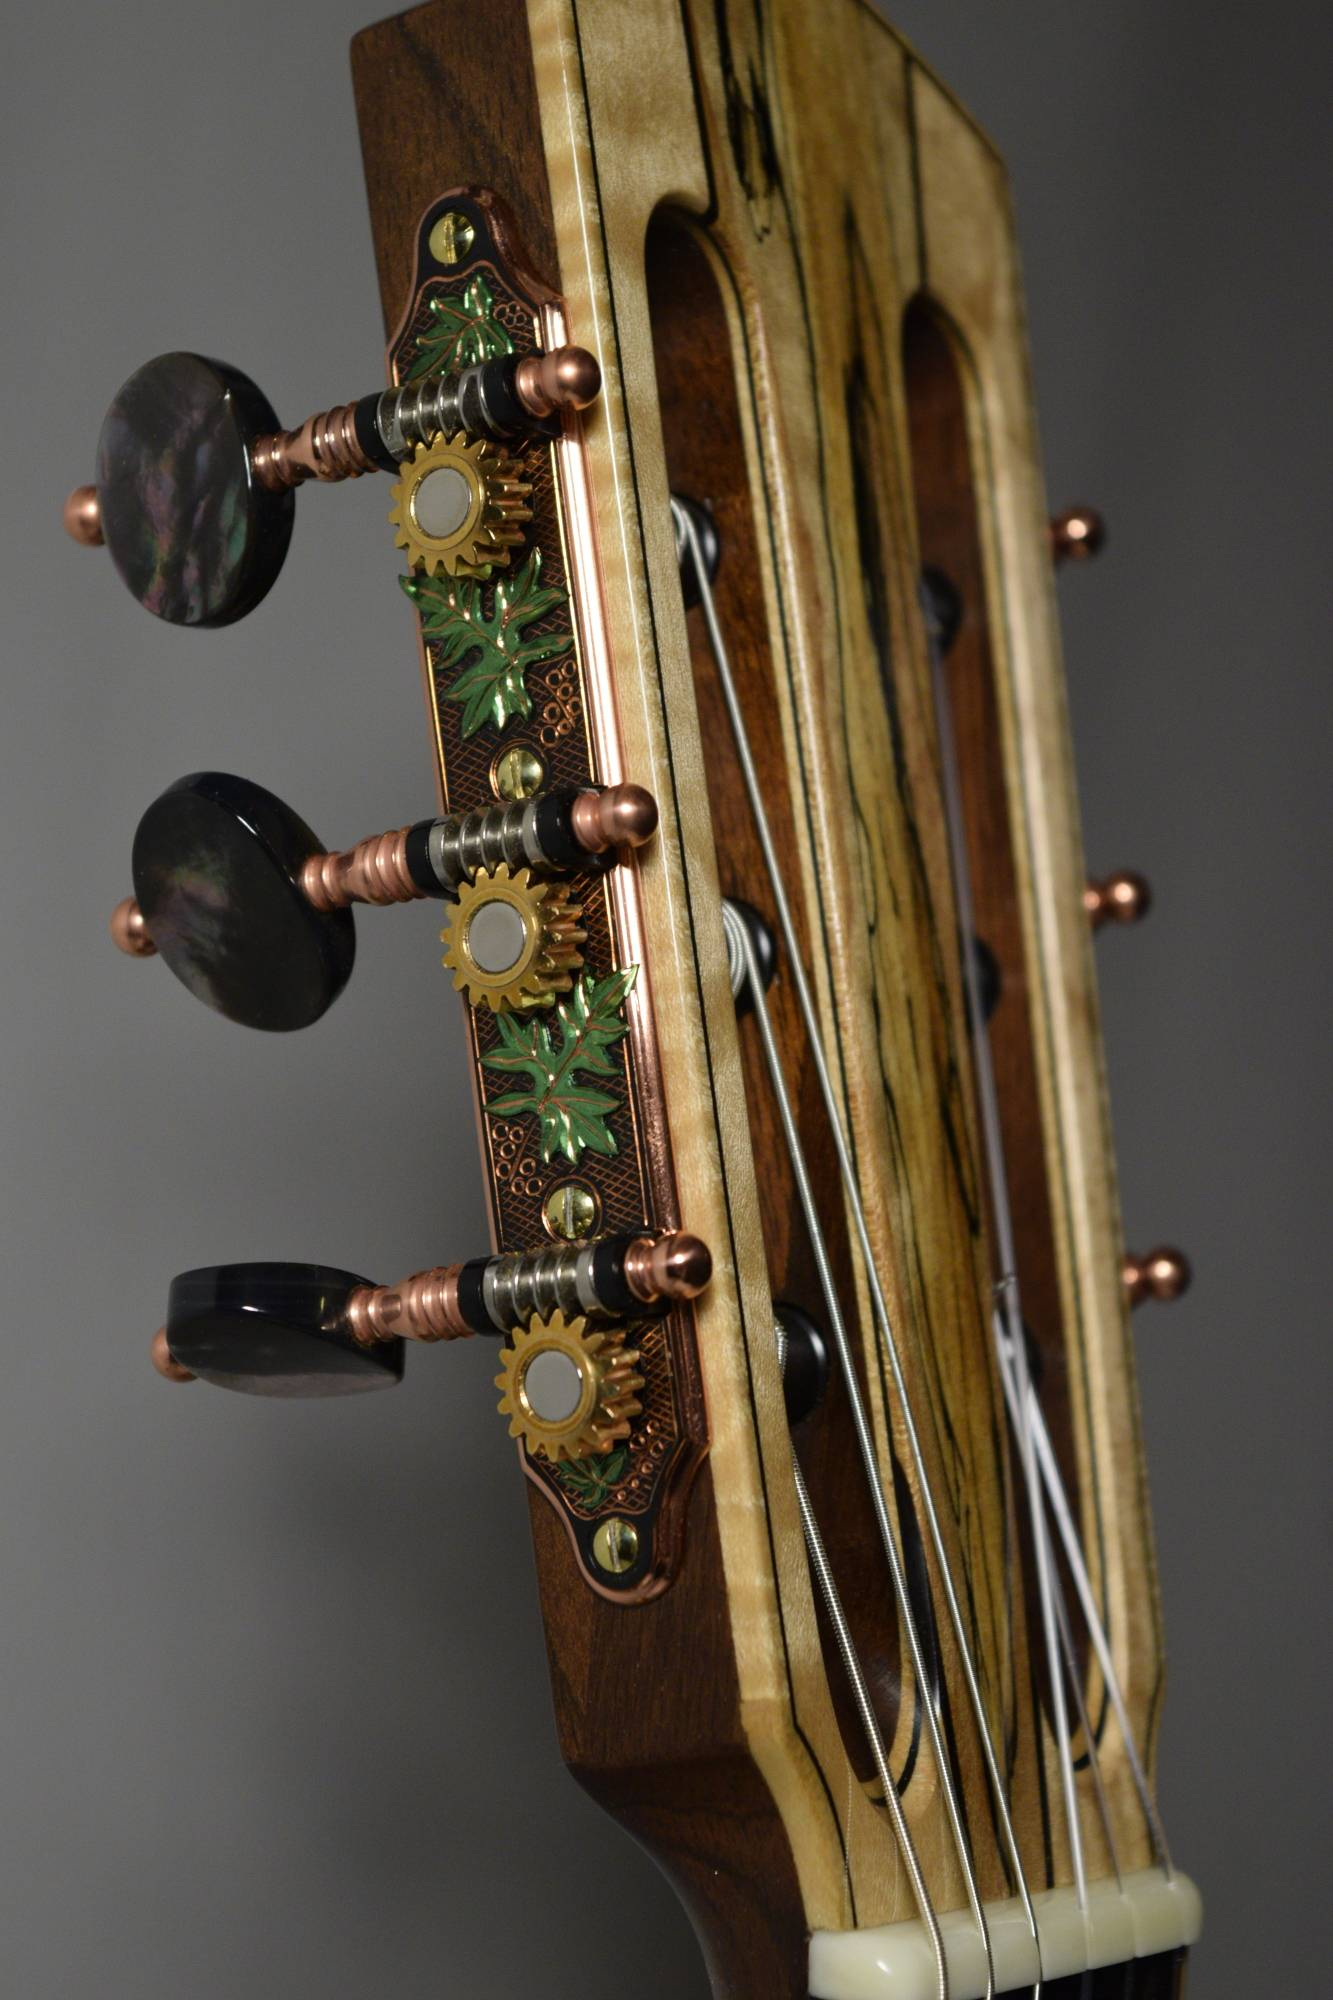 The tuners were custom made by Jorg Graf in Canada